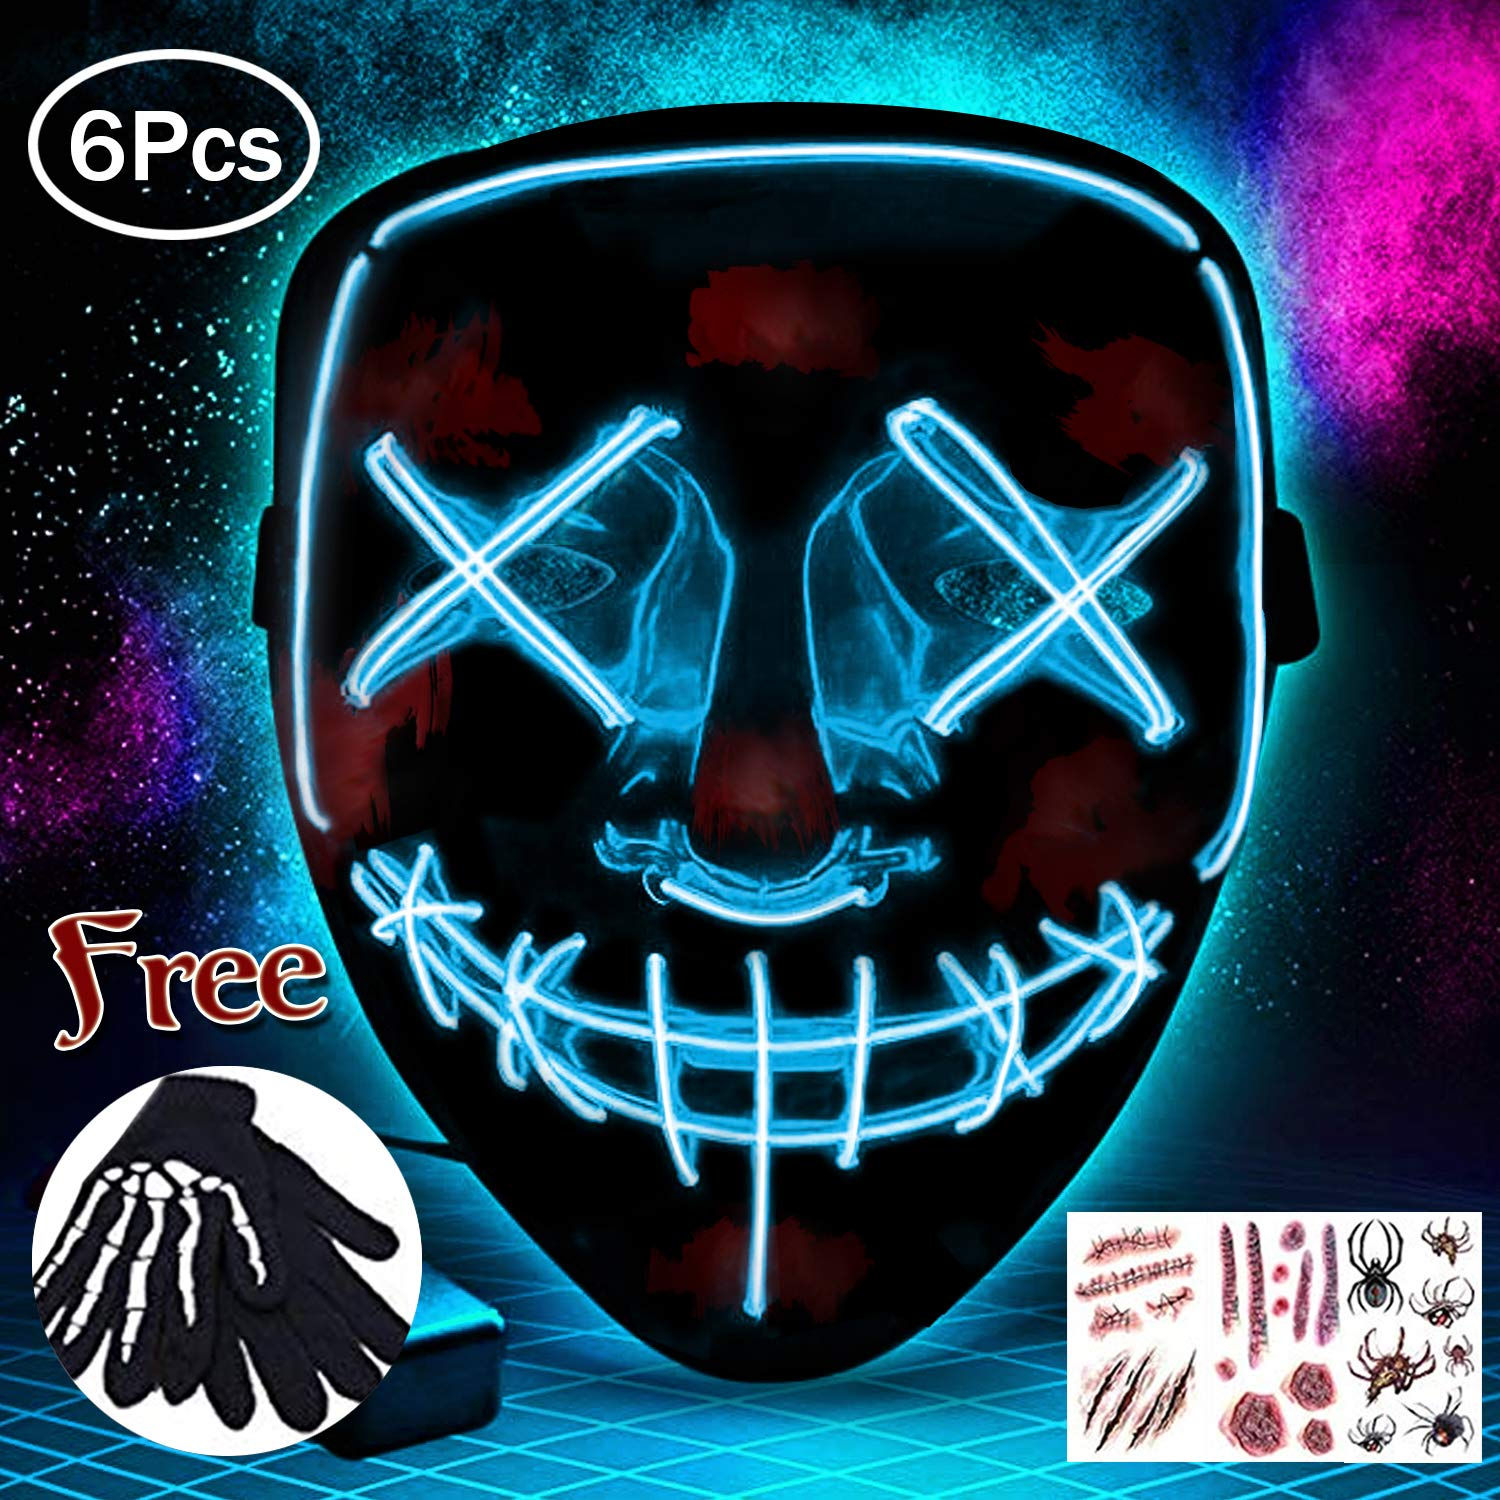 Halloween Masks Festival Party Cosplay LED Light Up Mask Carnival Mask Halloween Accessories Grimace Mask Battery Powered blue Not Included